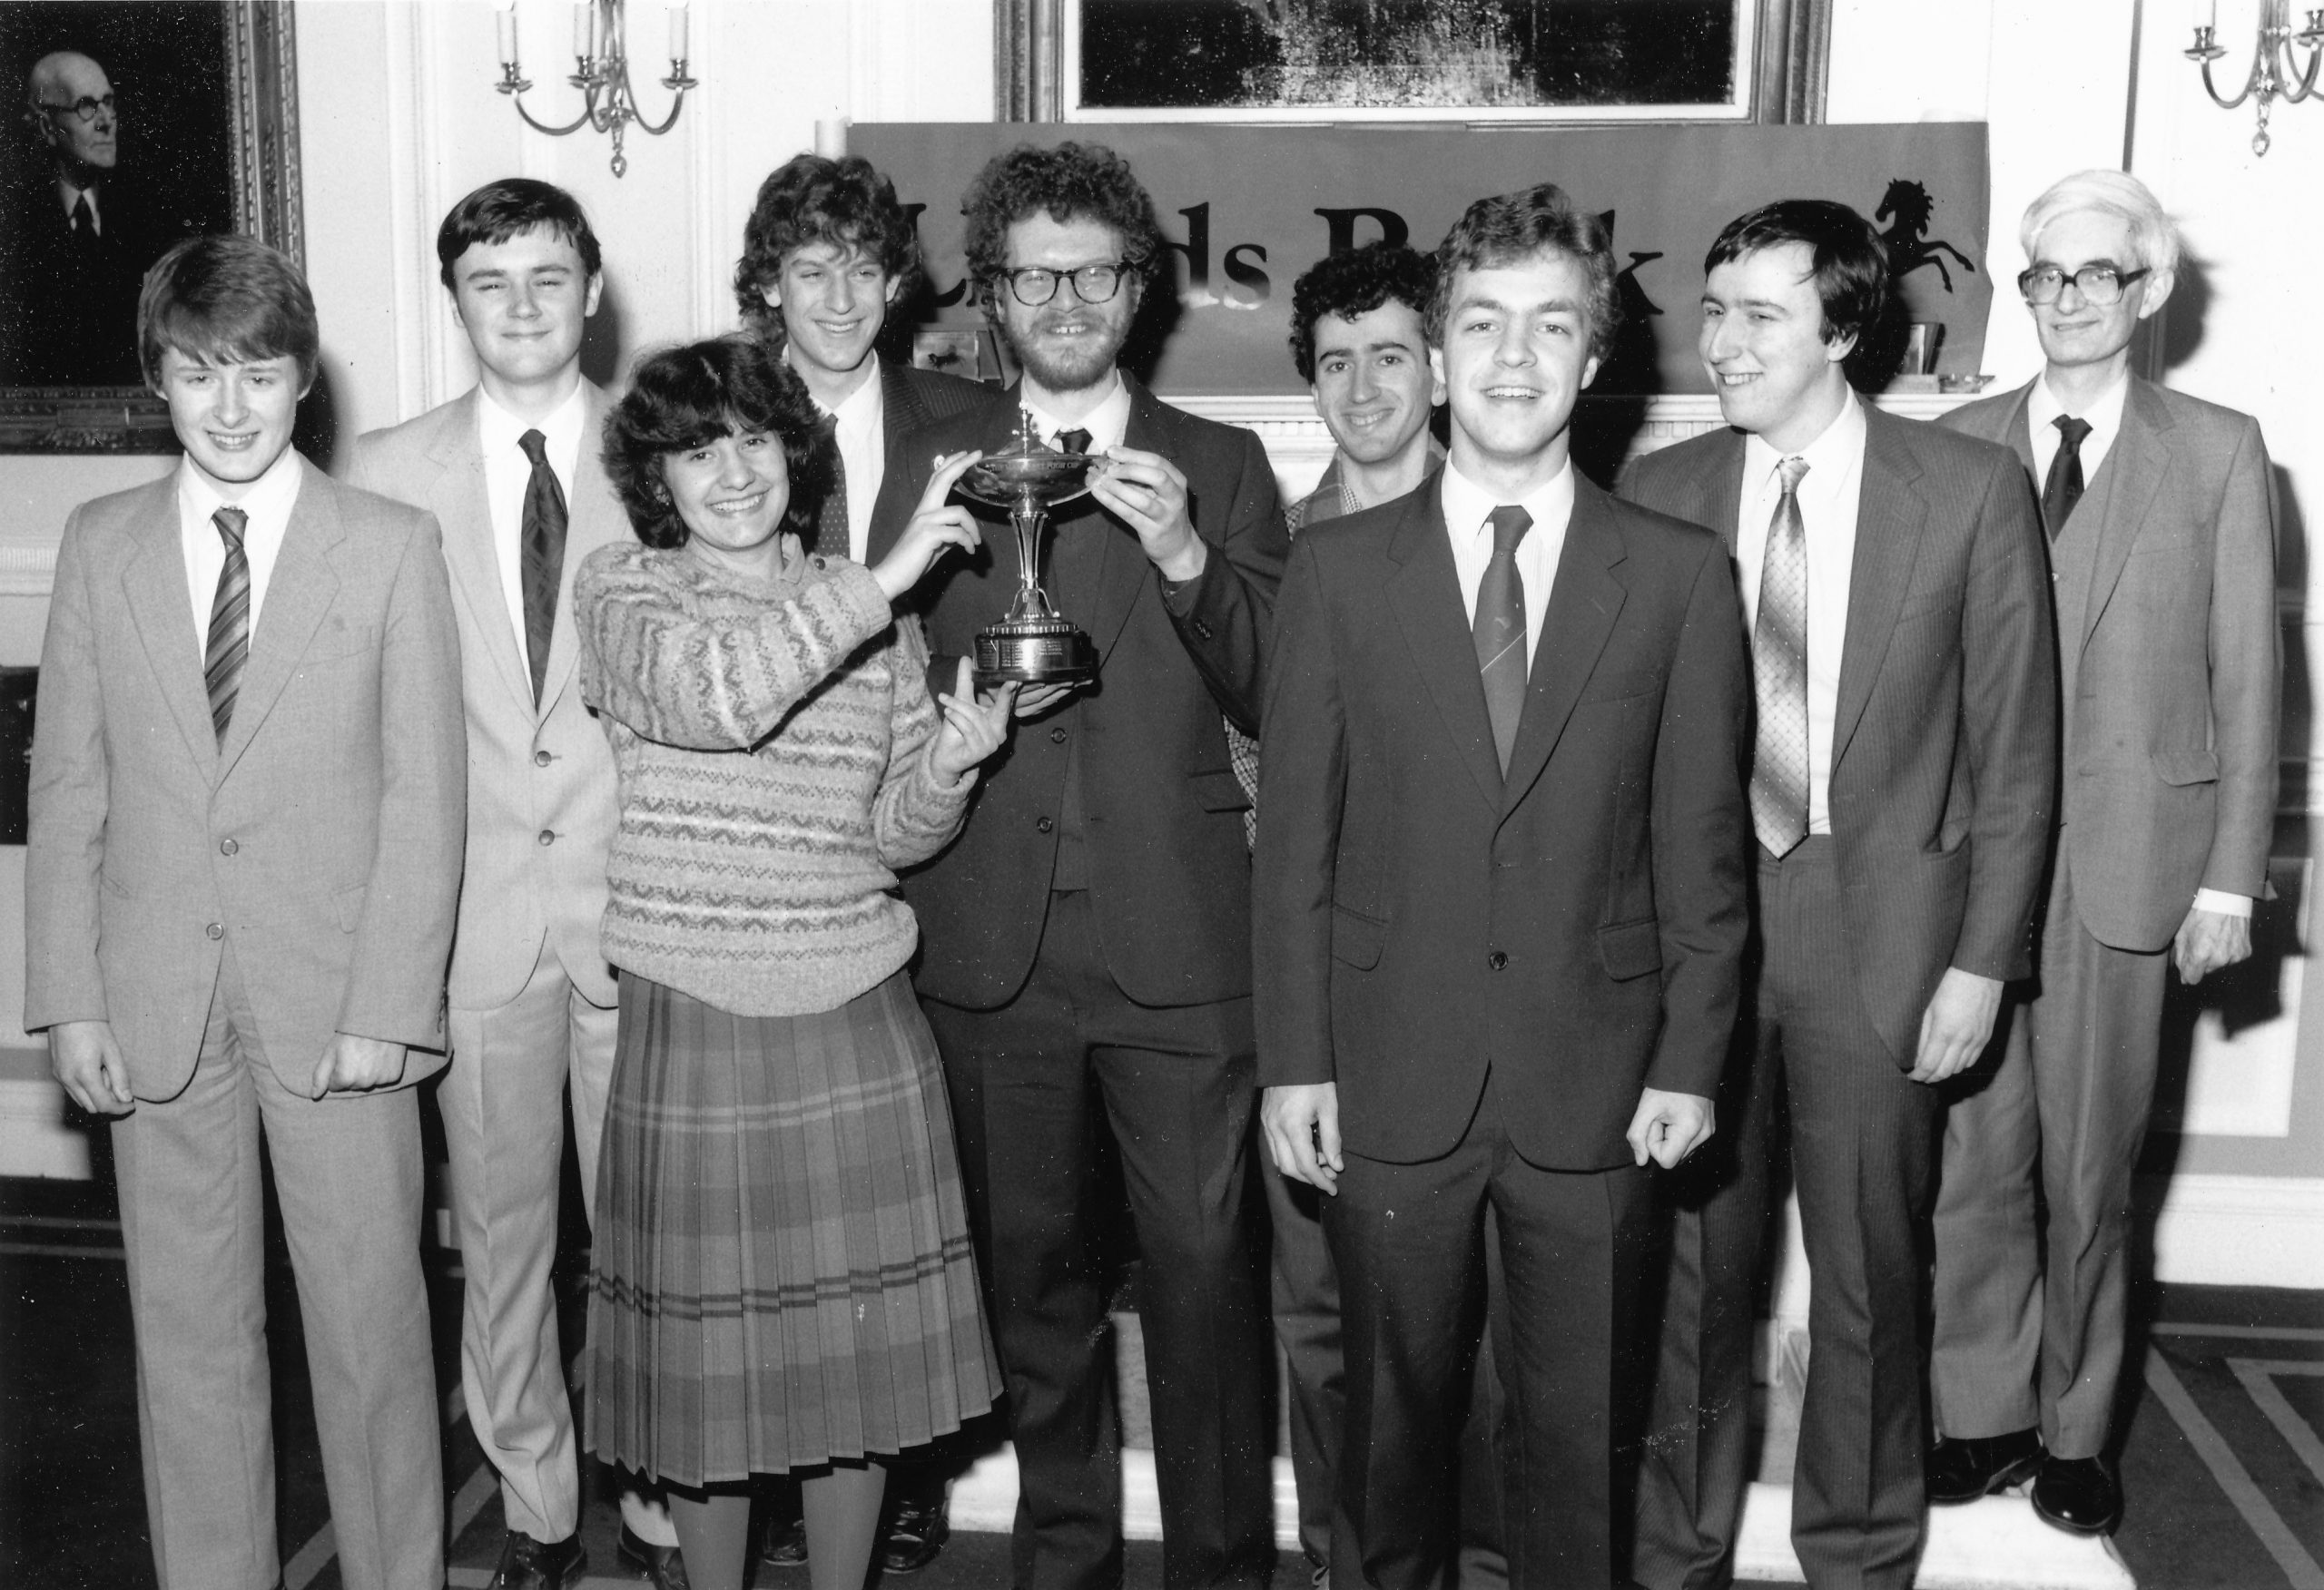 Adrian Hollis (far right) as Club President of the 1985 Oxford team of Peter Wells, Karl Bowden, Anita Rakshit, Kenny Shovel, IM Colin McNab, IM Jon Levitt, FM Neil Dickinson and FM John Hawksworth